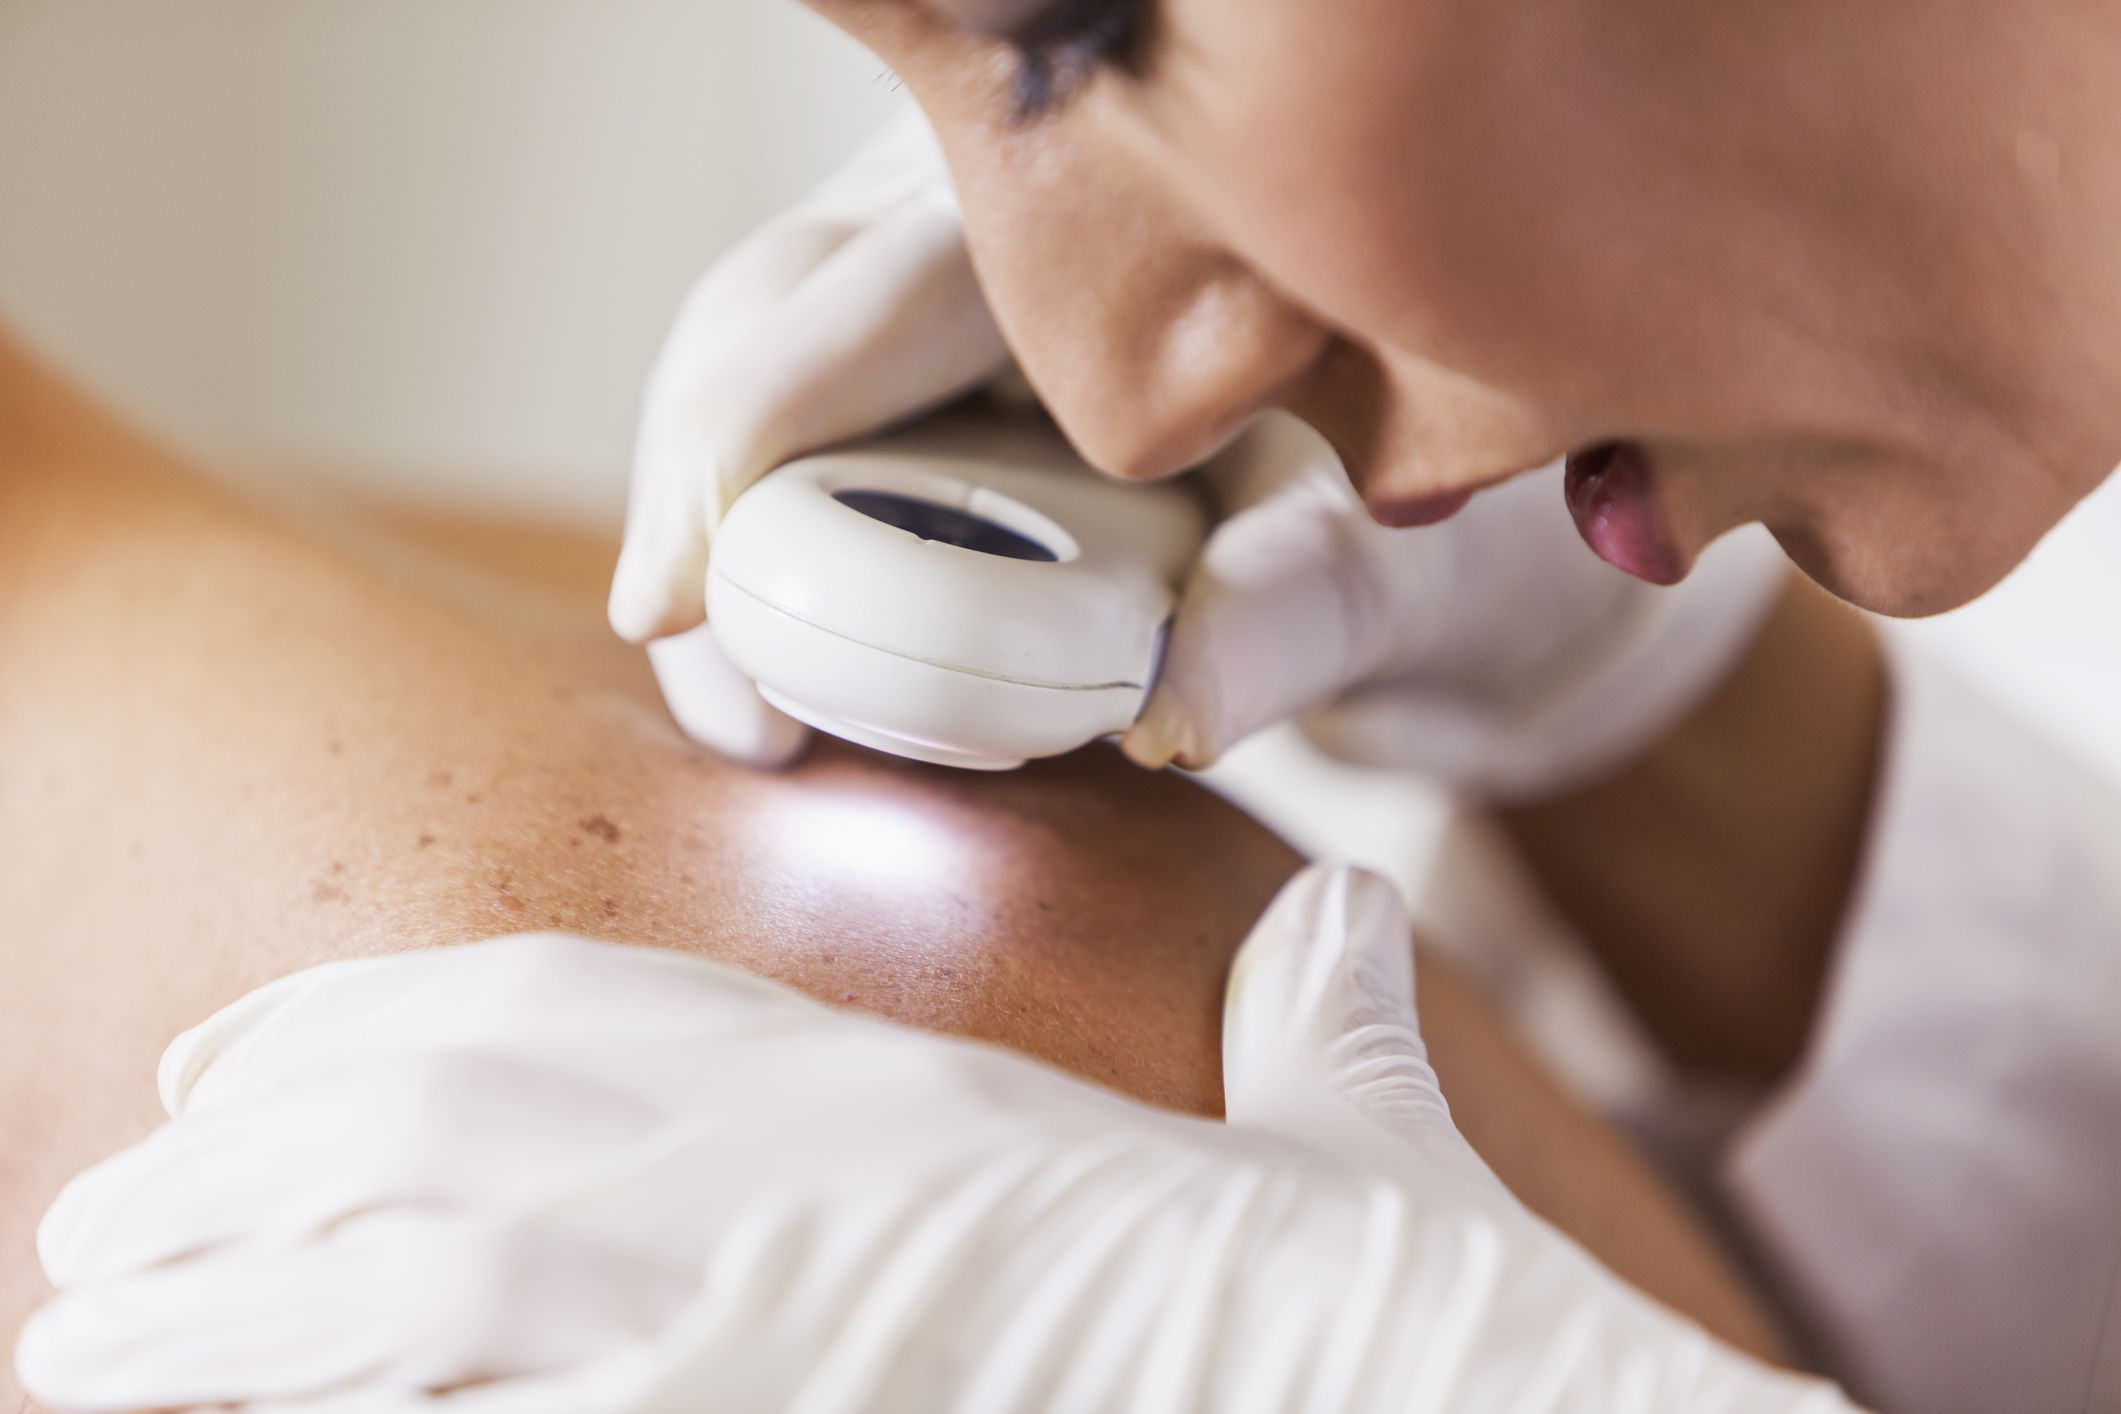 Skin Cancer: Signs, Symptoms, and Complications